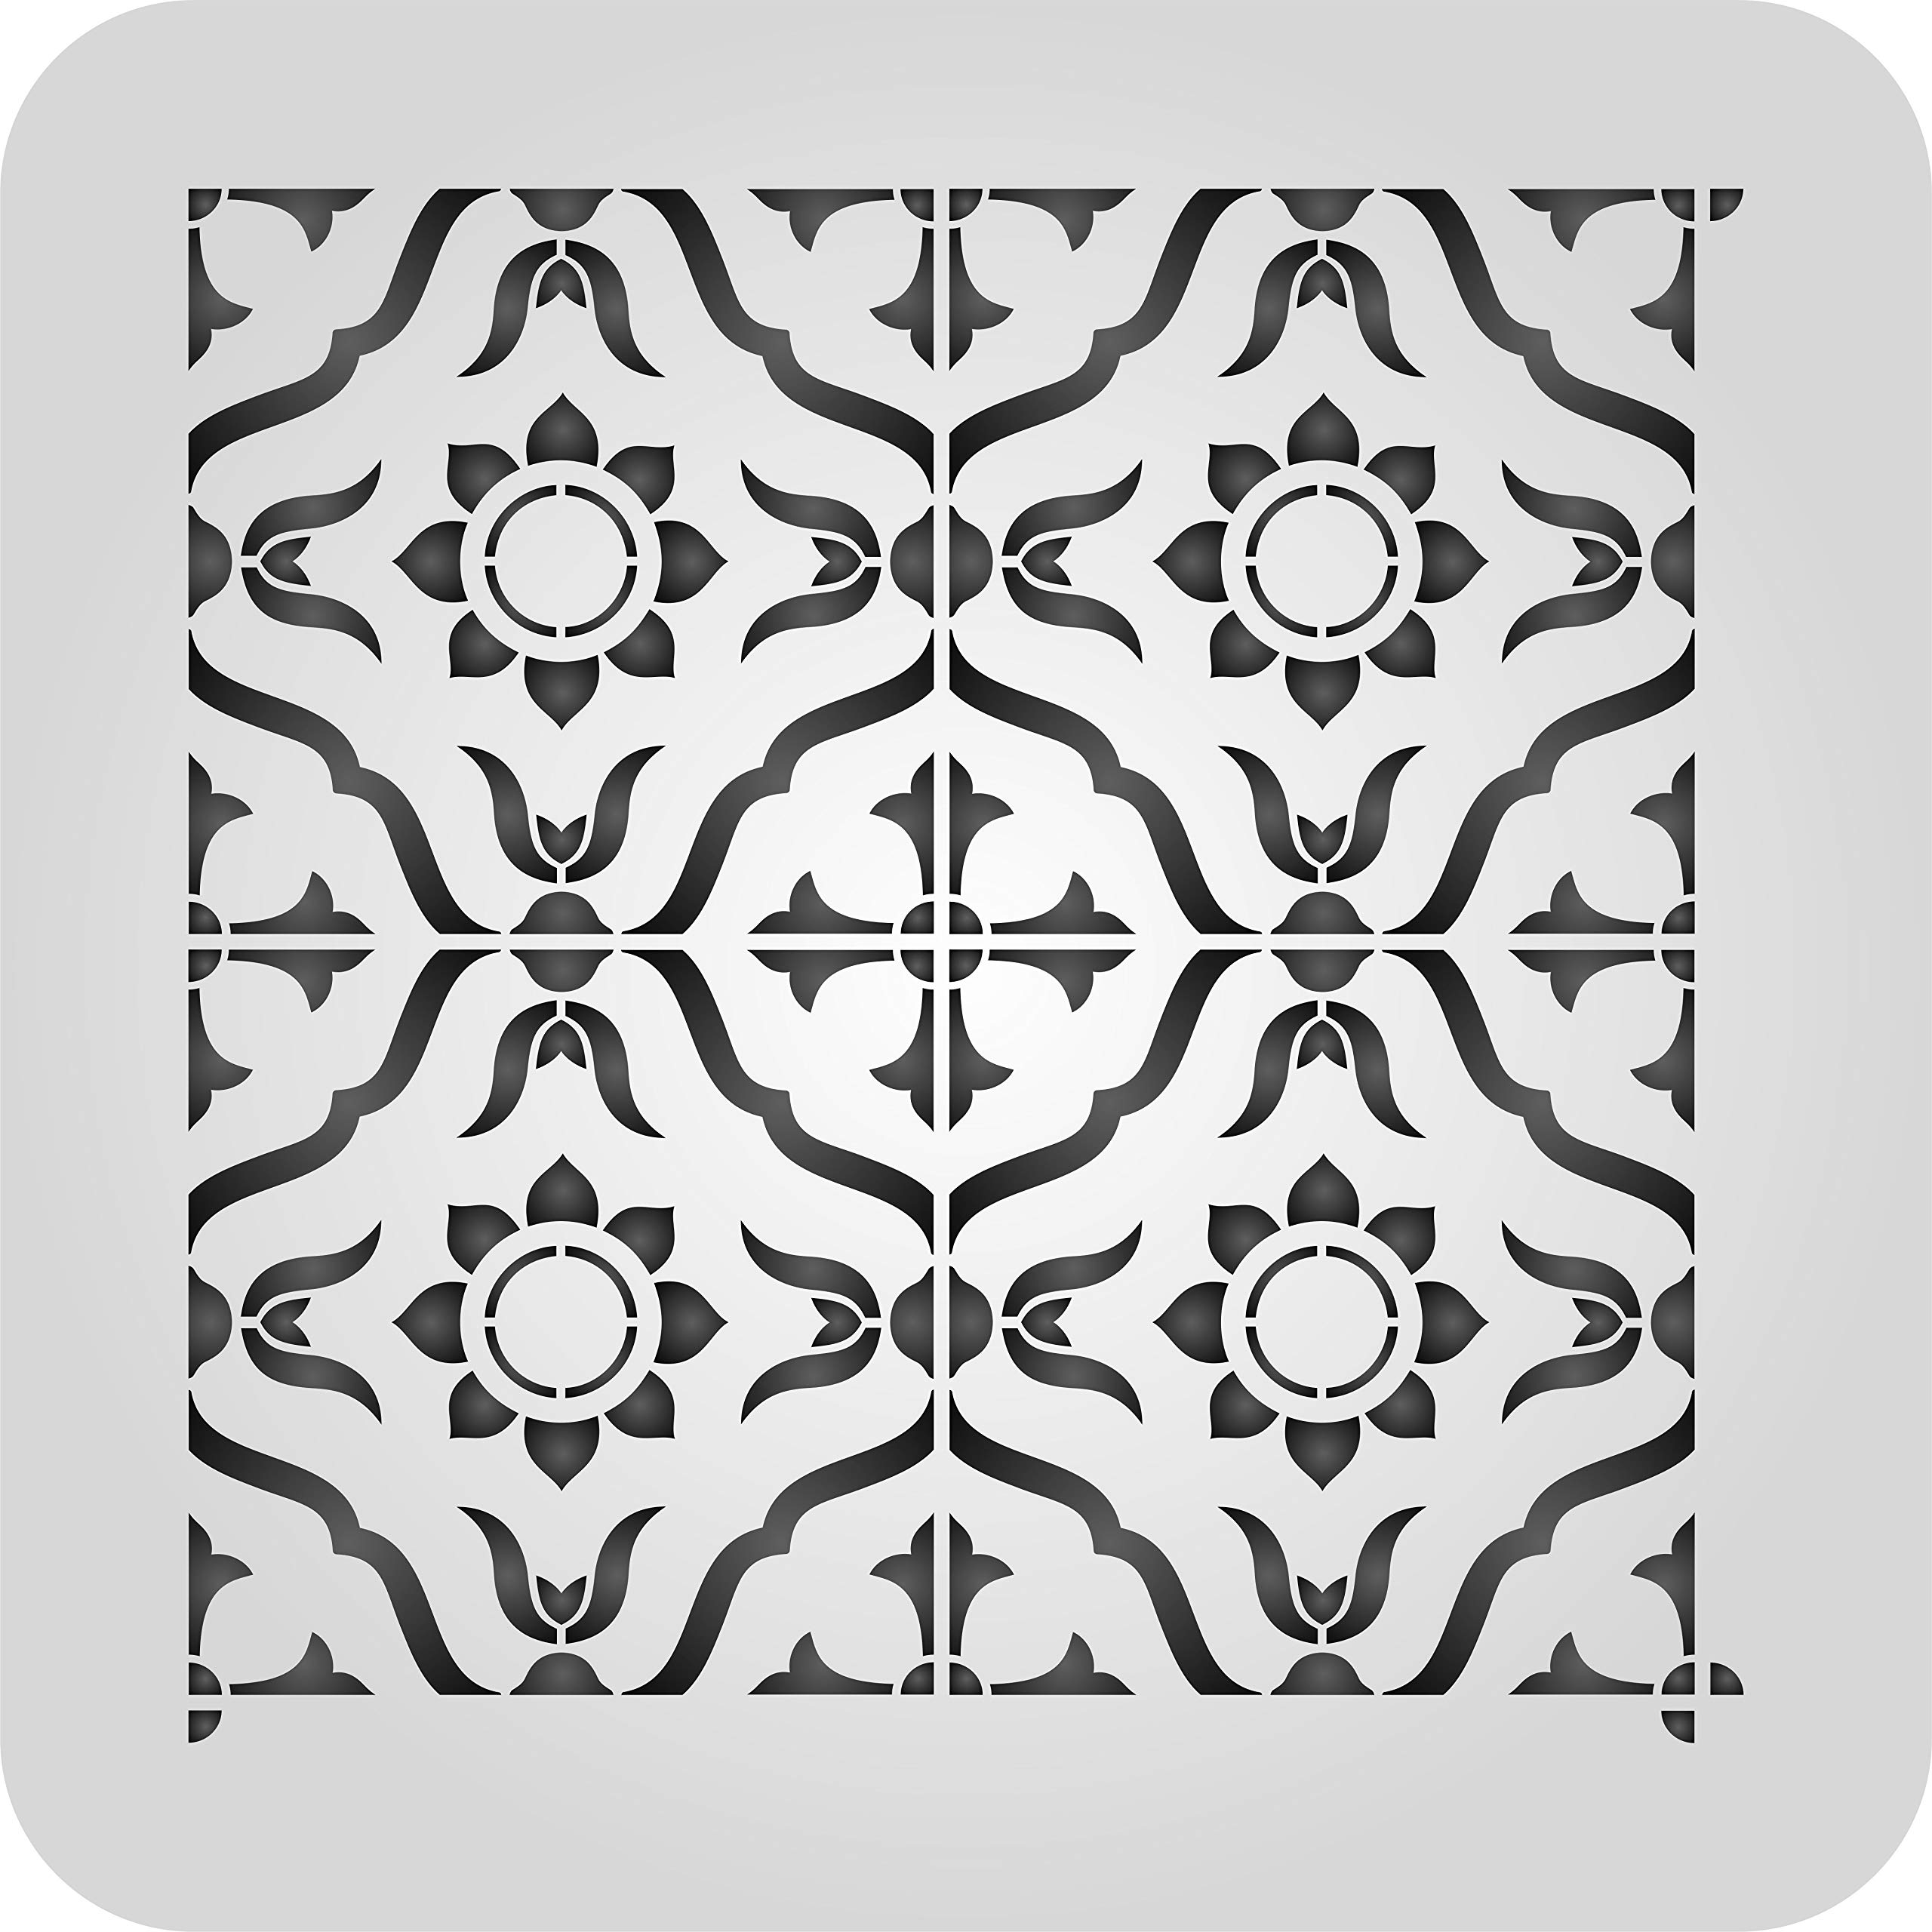 Moroccan Tile Stencil - 12 x 12 inch 4 Tile (L) - Reusable Talavera Mexican Turkish Italian Tile Stencils for Painting - Use on Walls, Floors, Fabrics, Glass, Wood, and More...